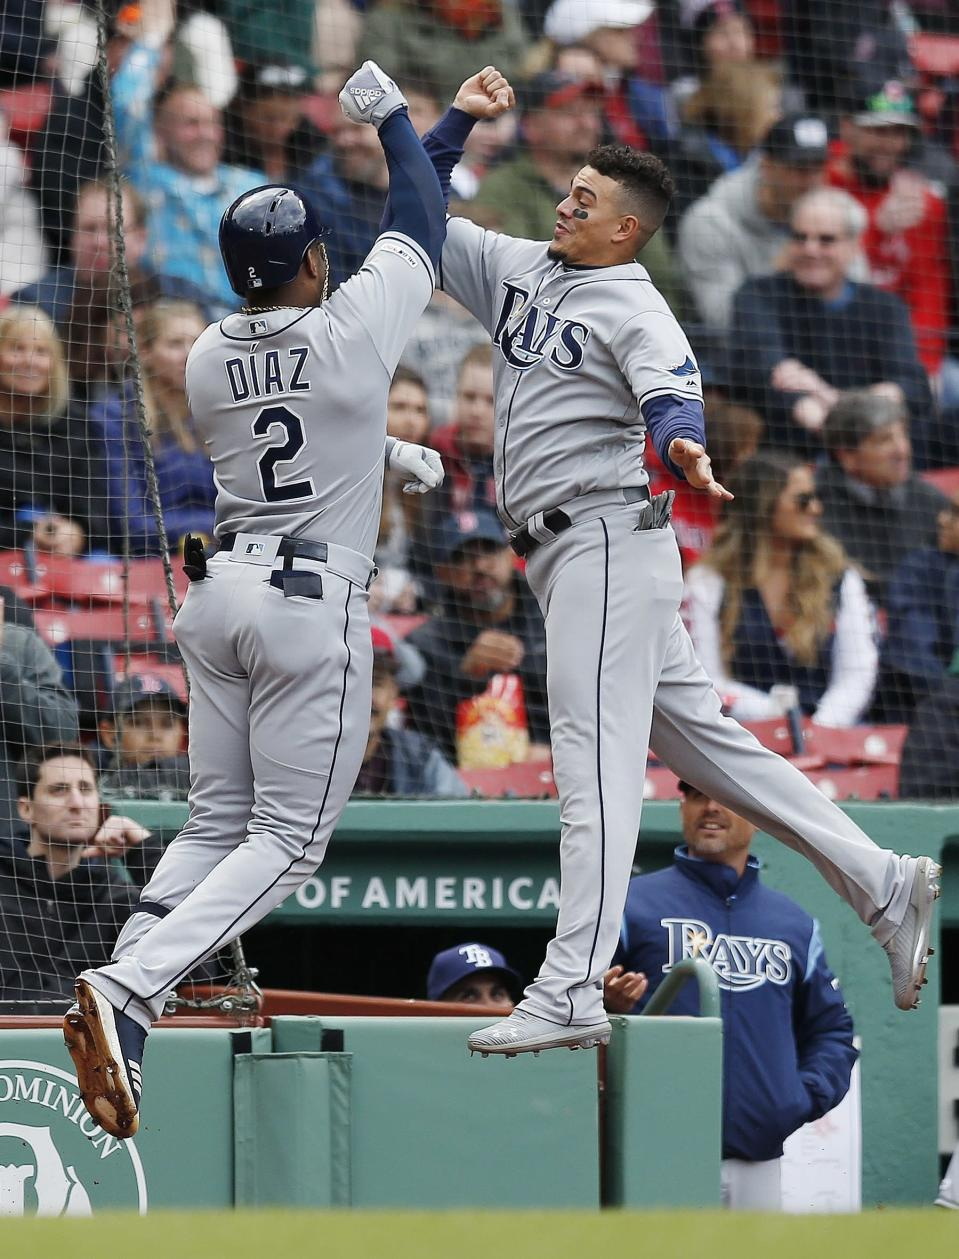 Tampa Bay Rays' Yandy Diaz (2) celebrates his solo home run with teammate Willy Adames during the first inning of a baseball game against the Boston Red Sox in Boston, Saturday, April 27, 2019. (AP Photo/Michael Dwyer)